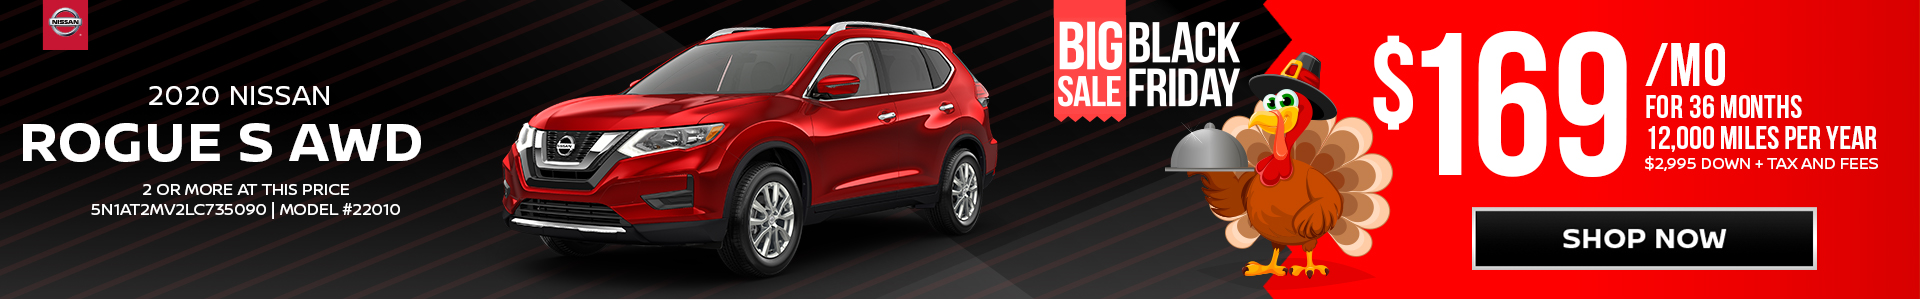 Nissan Rogue $169 Lease